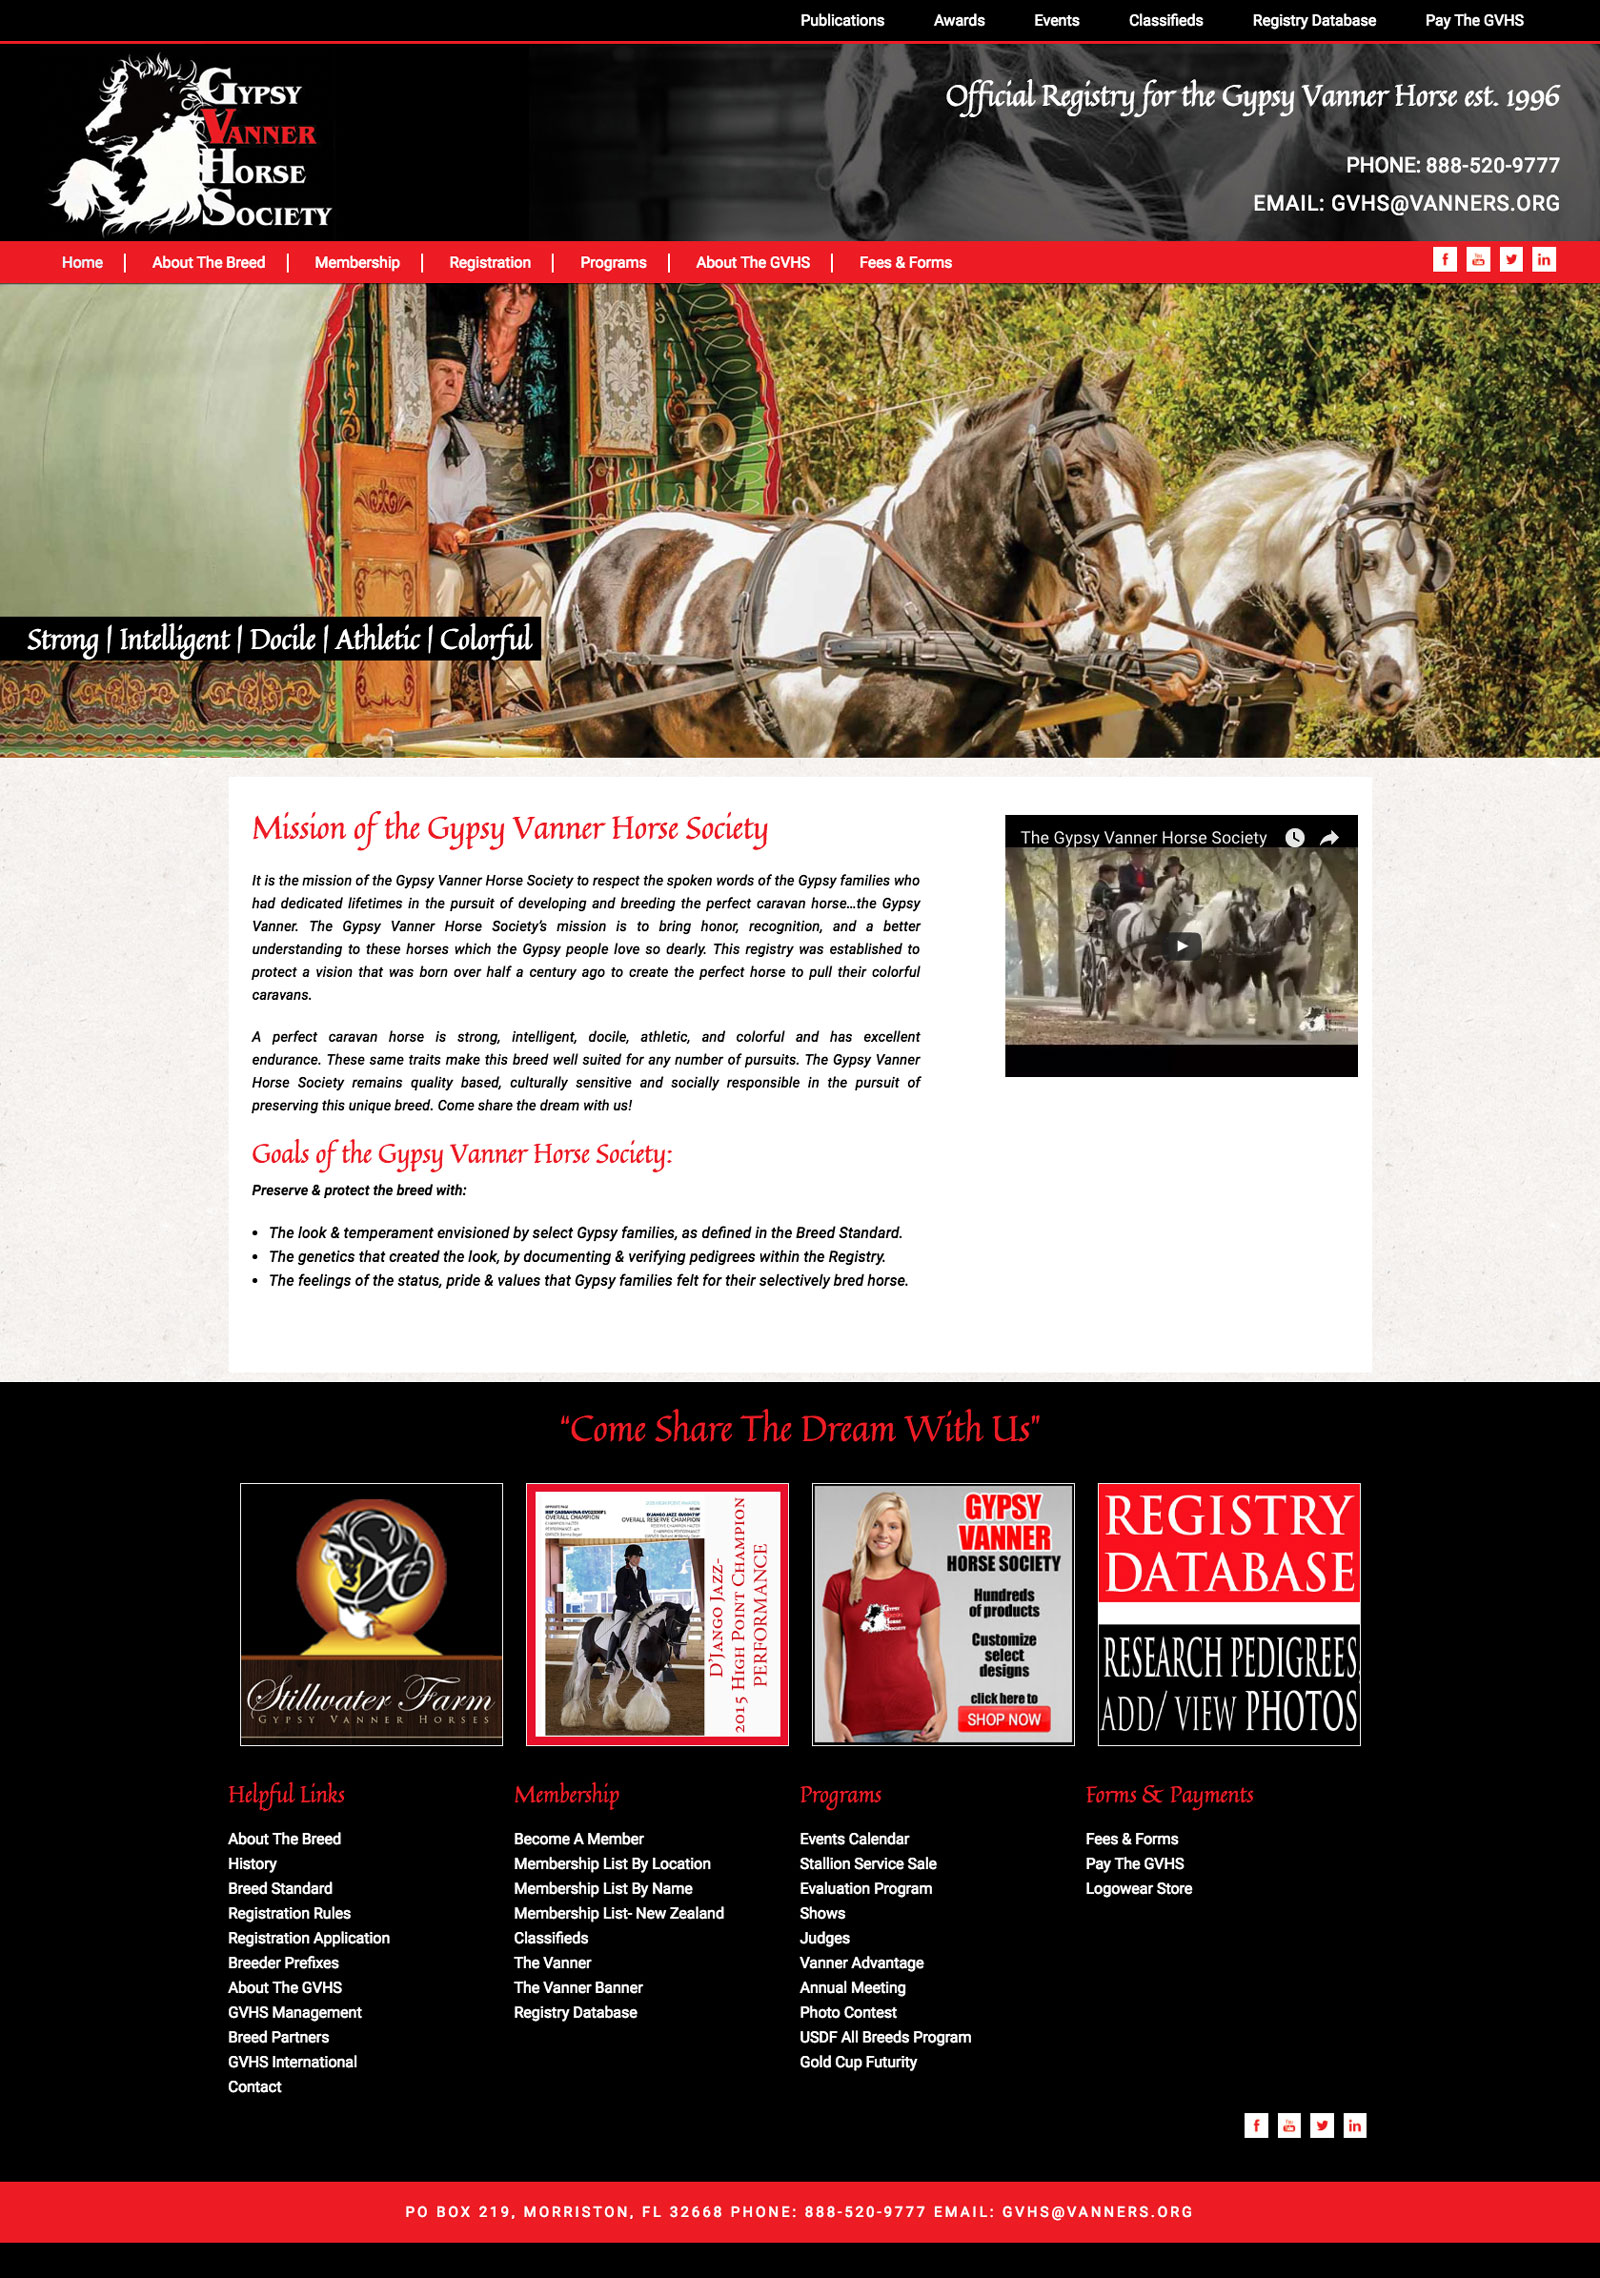 Gypsy Vanner Horse Society Website